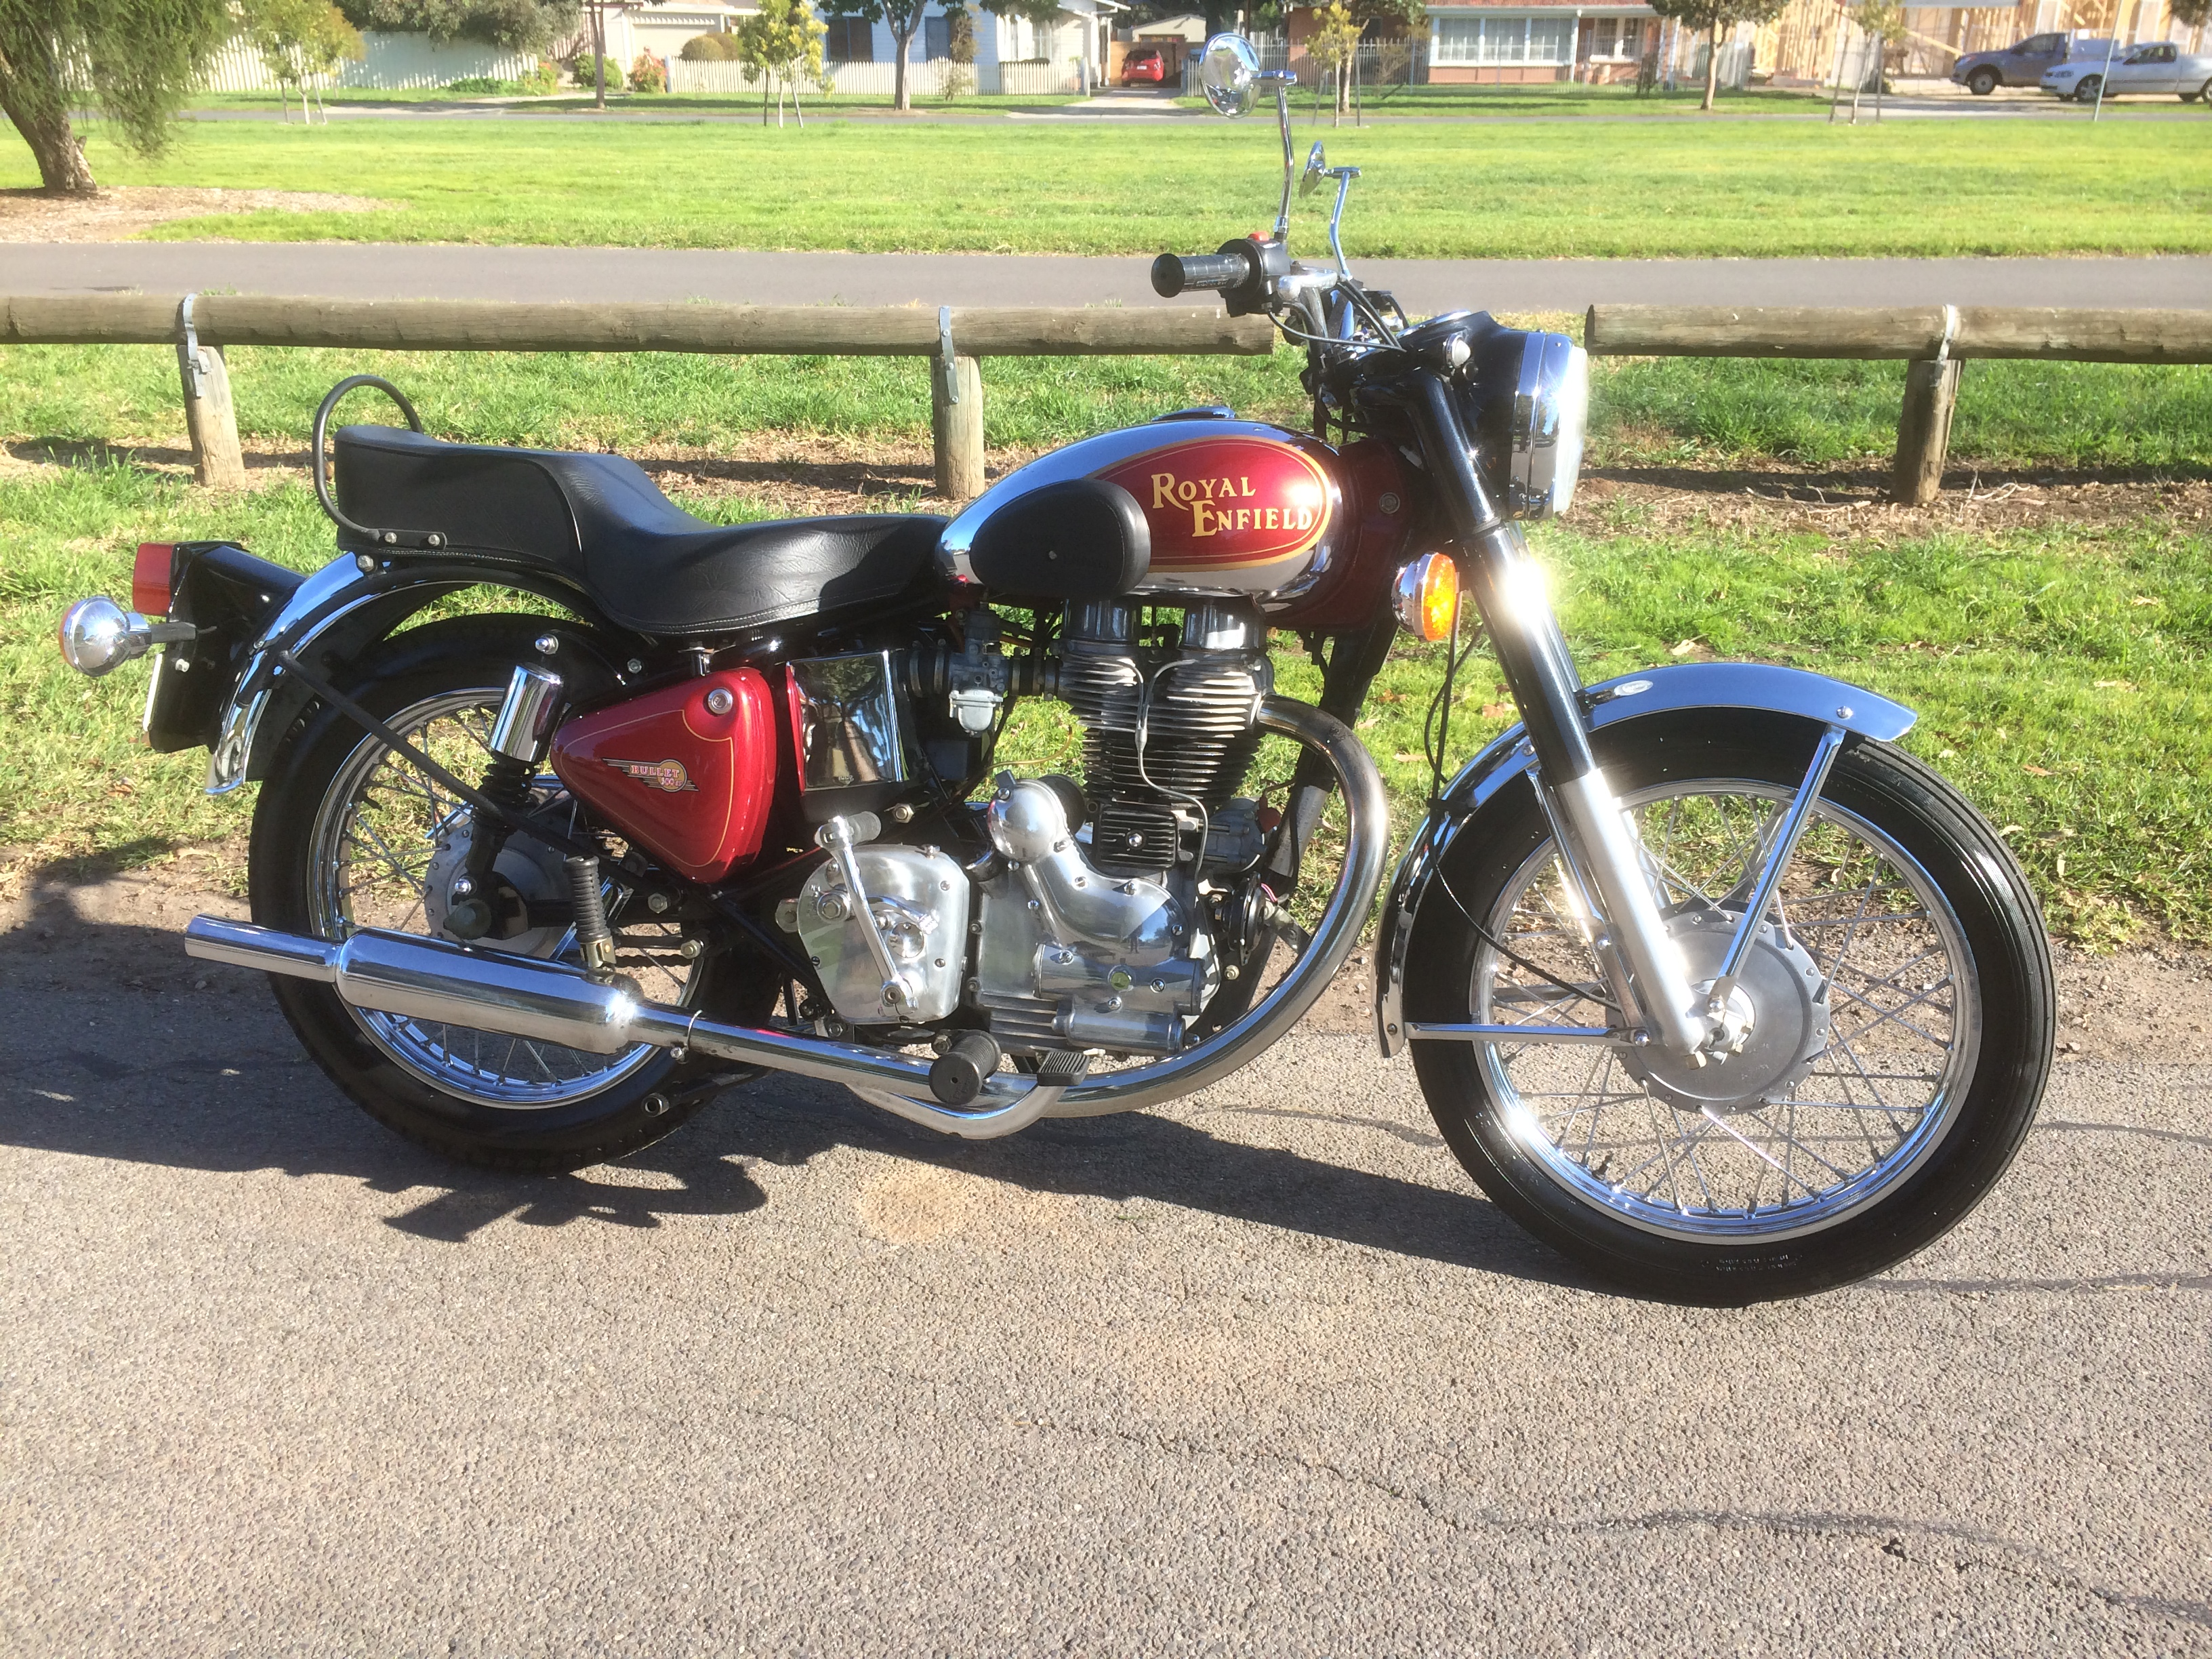 Royal Enfield Bullet 500 Trial Trail 2001 images #122962